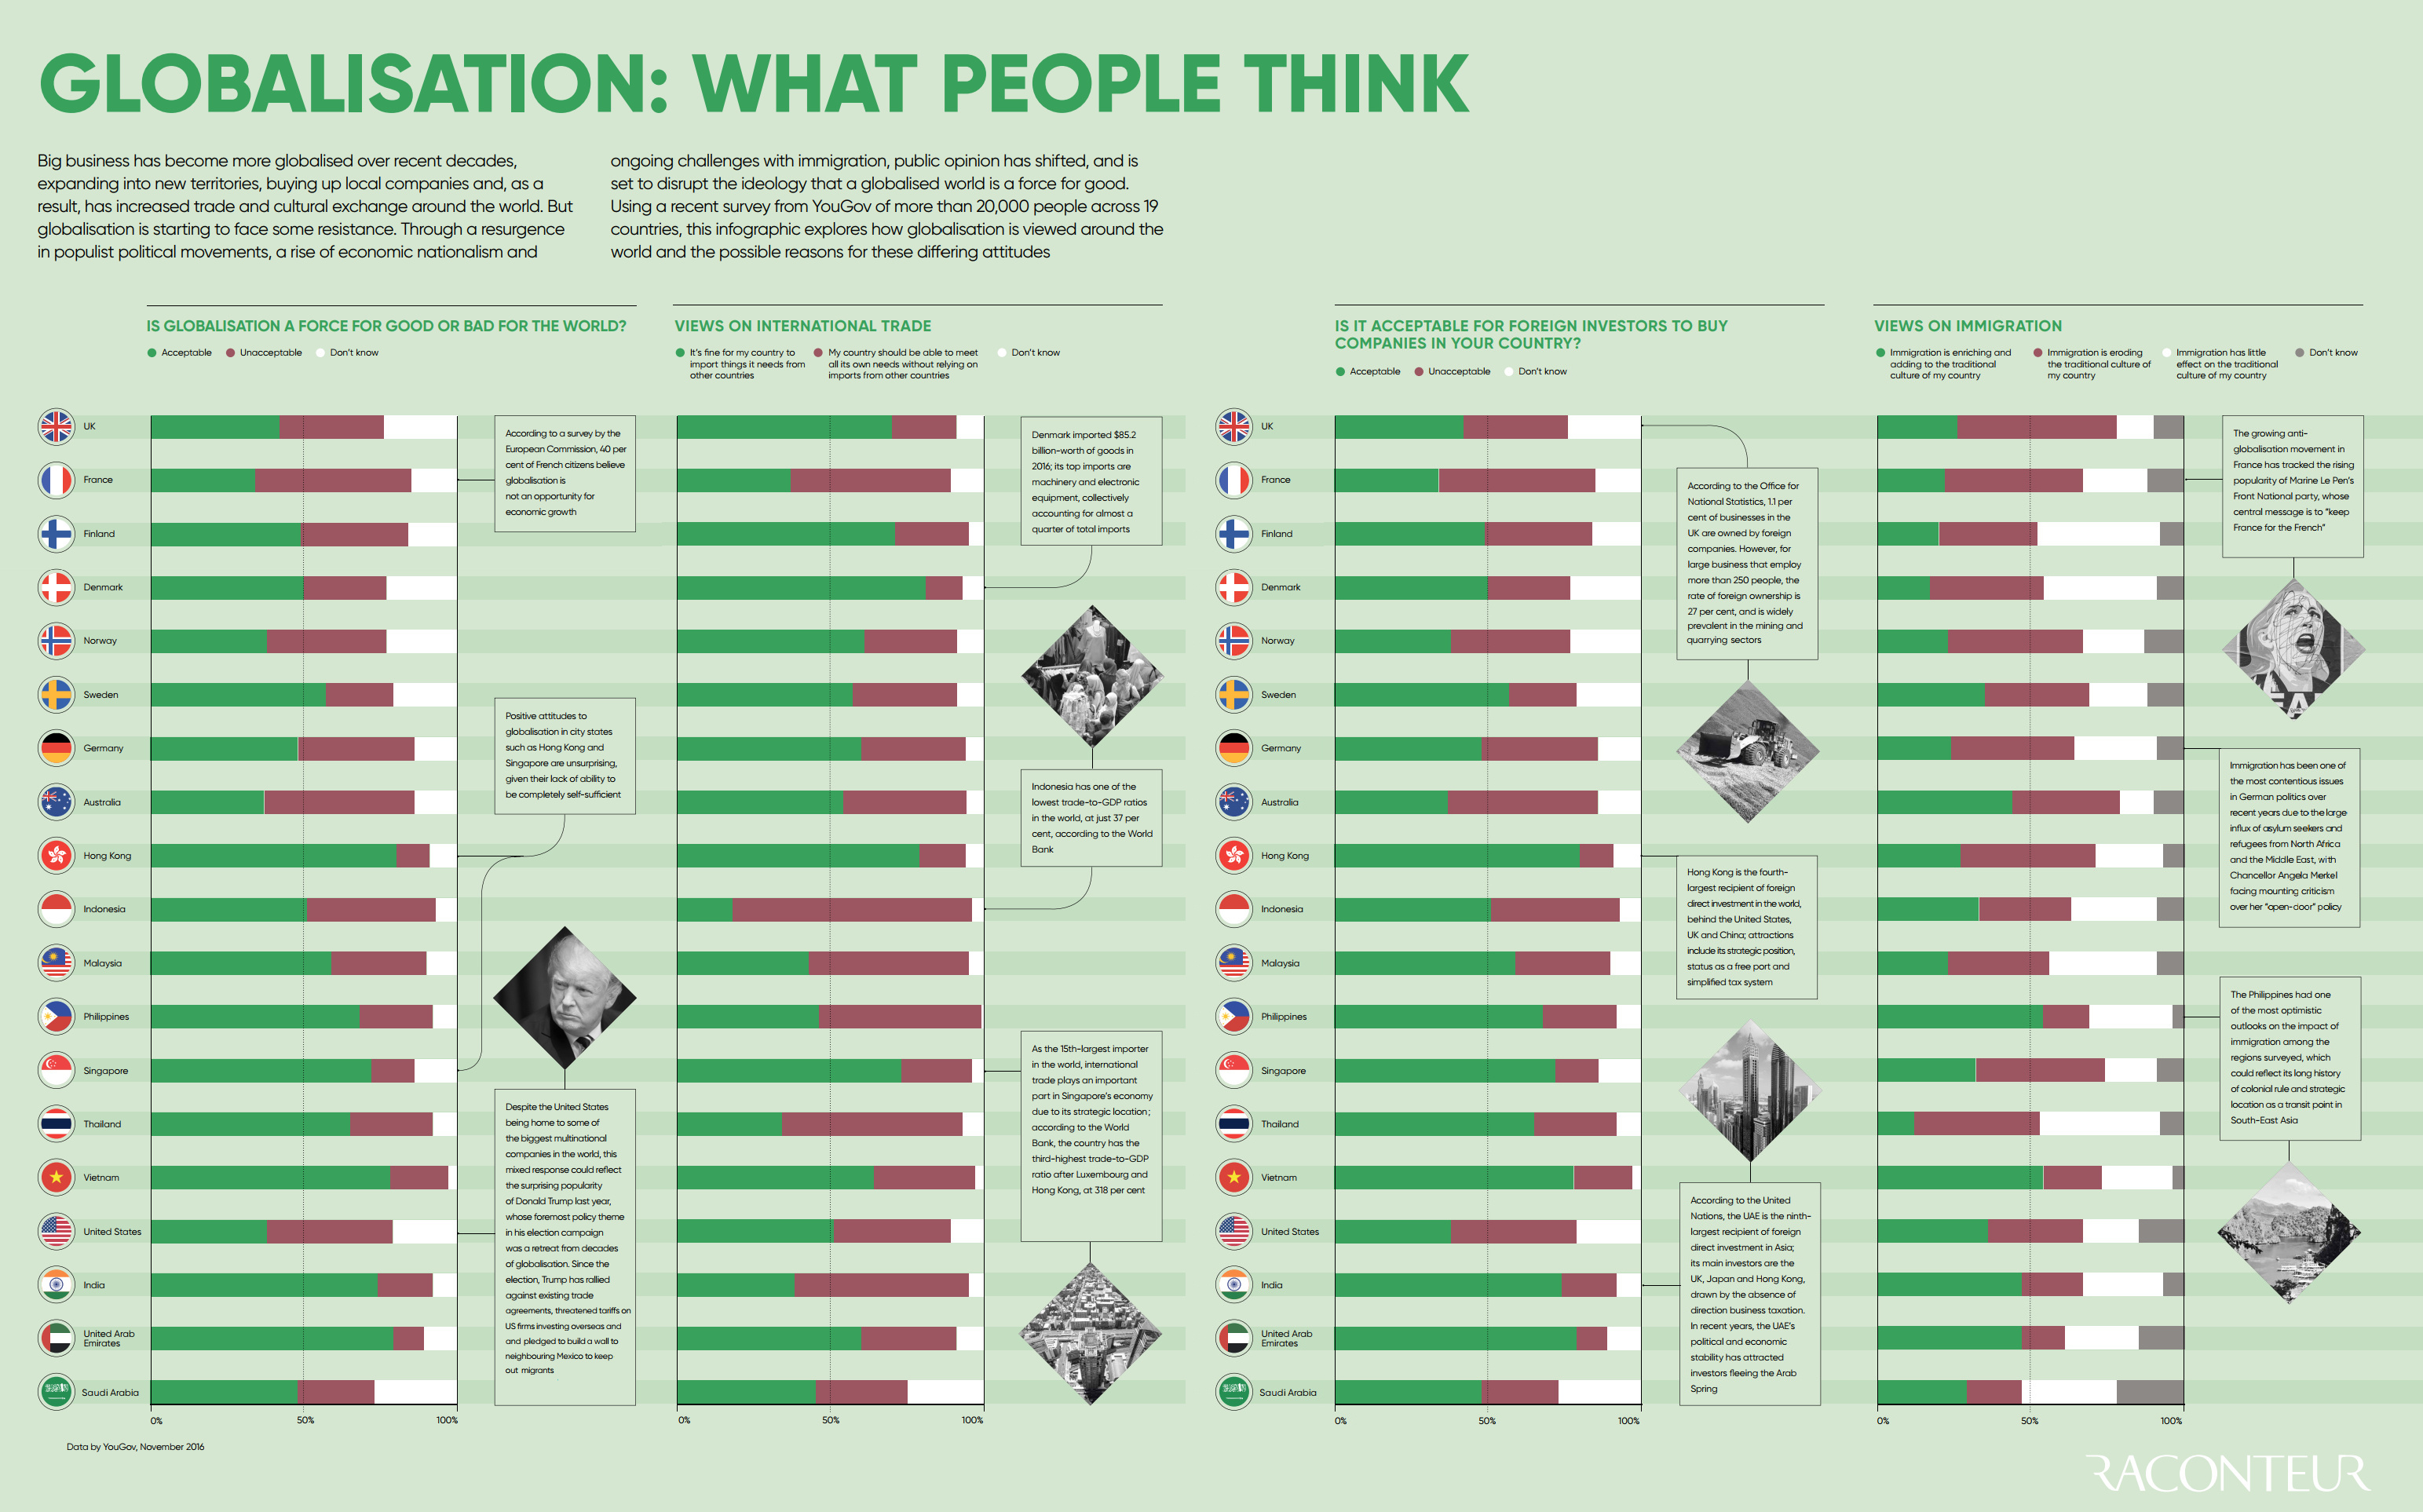 What People think of Globalization, by Country